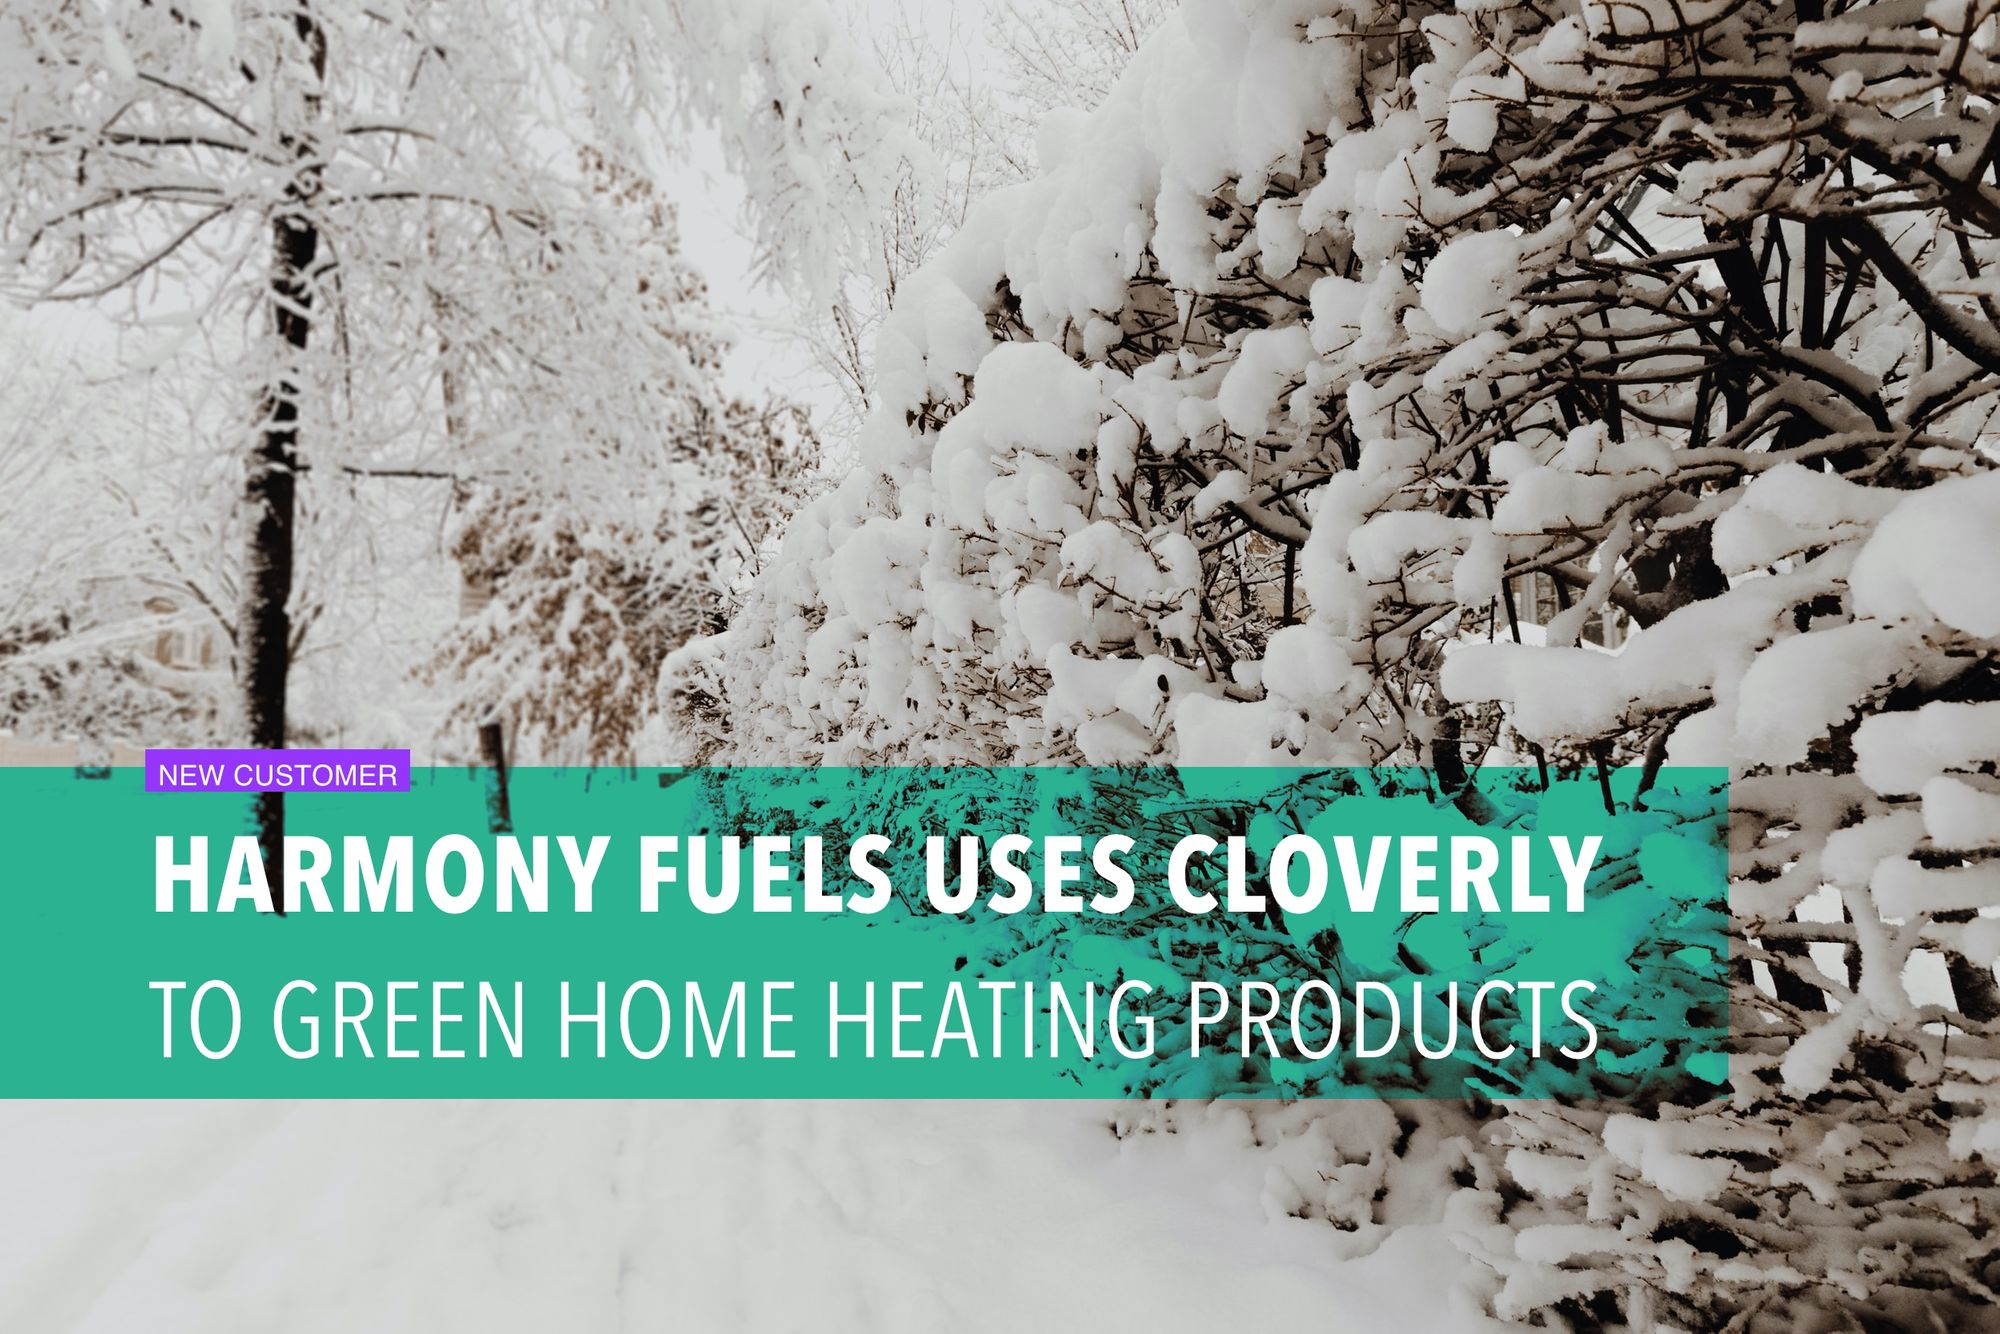 Harmony Fuels uses Cloverly to green home heating products